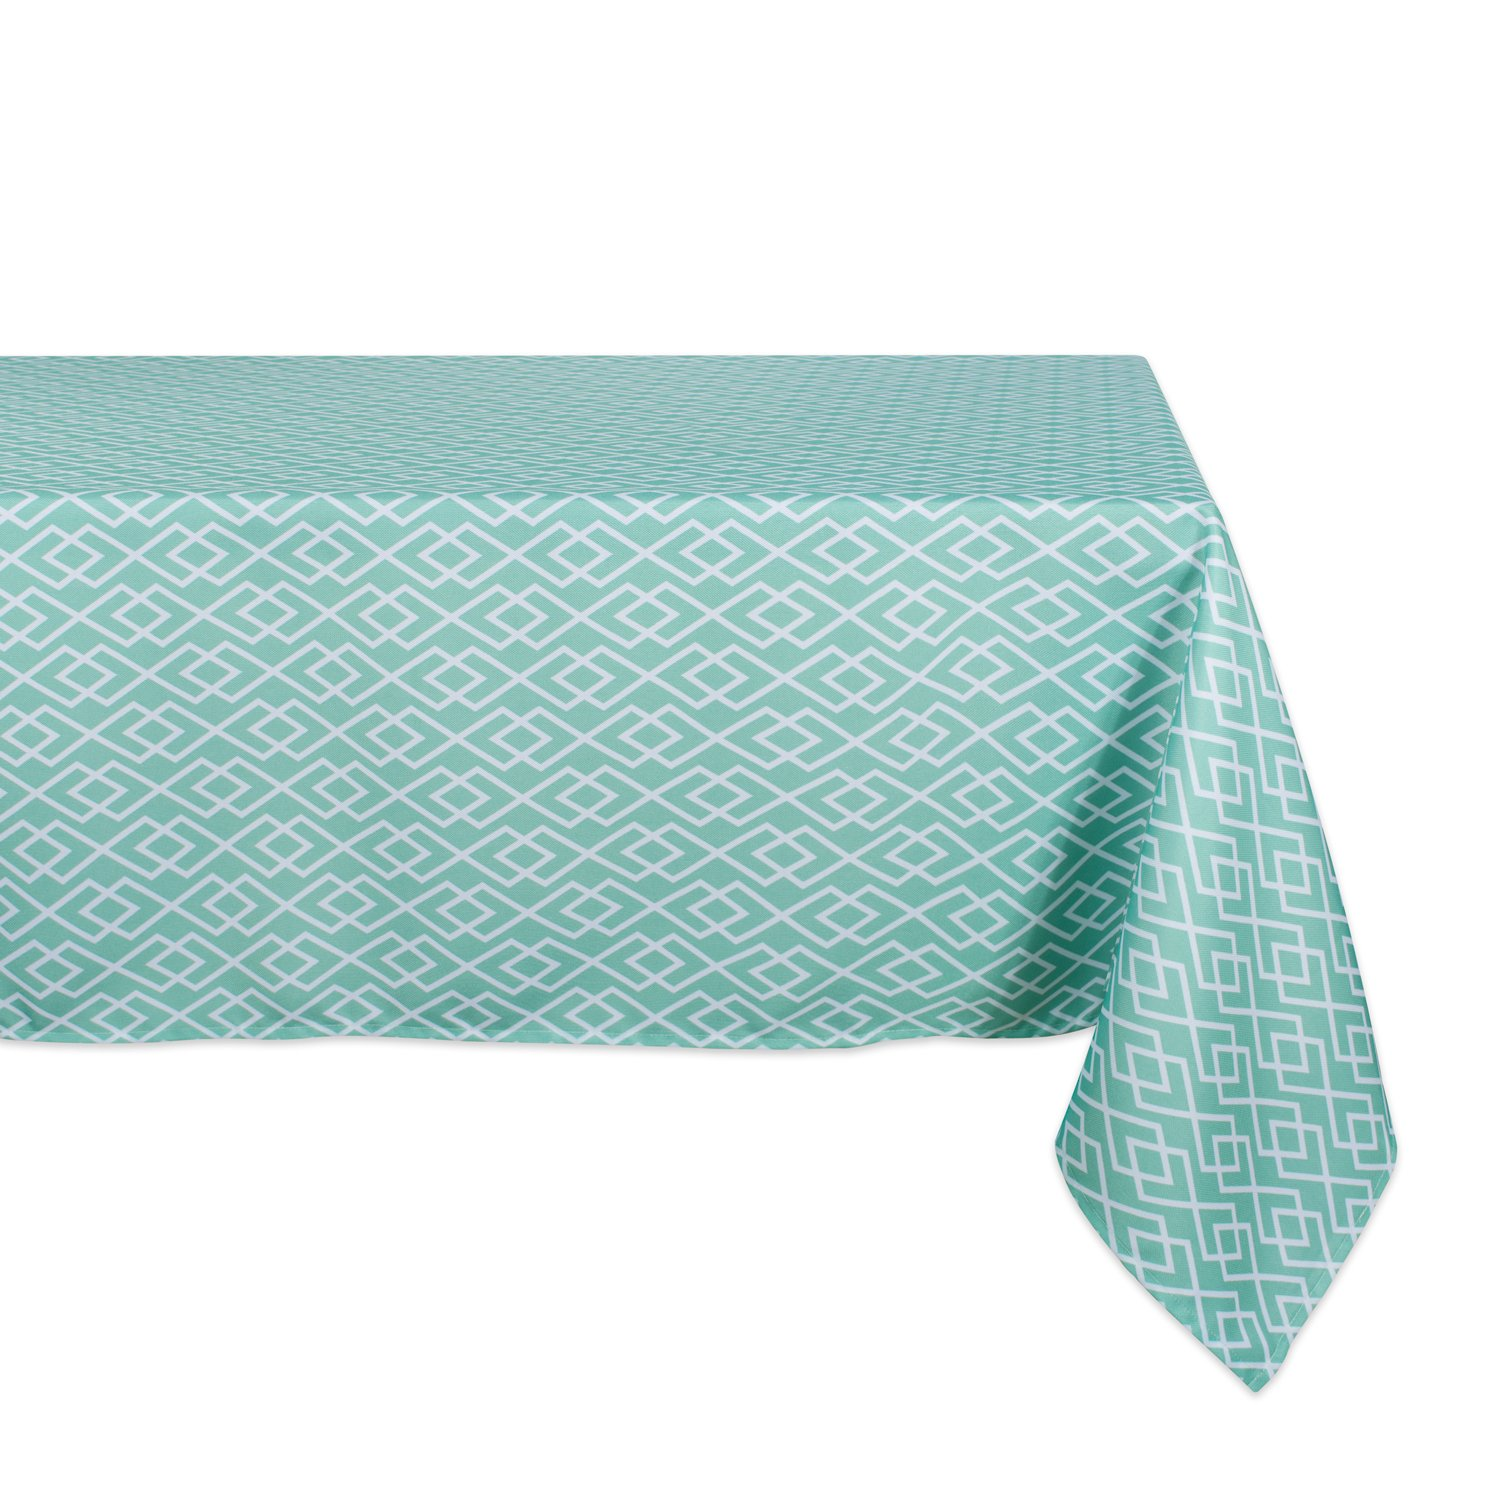 DII 100% Polyester, Spill Proof, Machine Washable, Tablecloth for Outdoor Use, 60x84 Round, Aqua Diamond, Seats 6 to 8 People